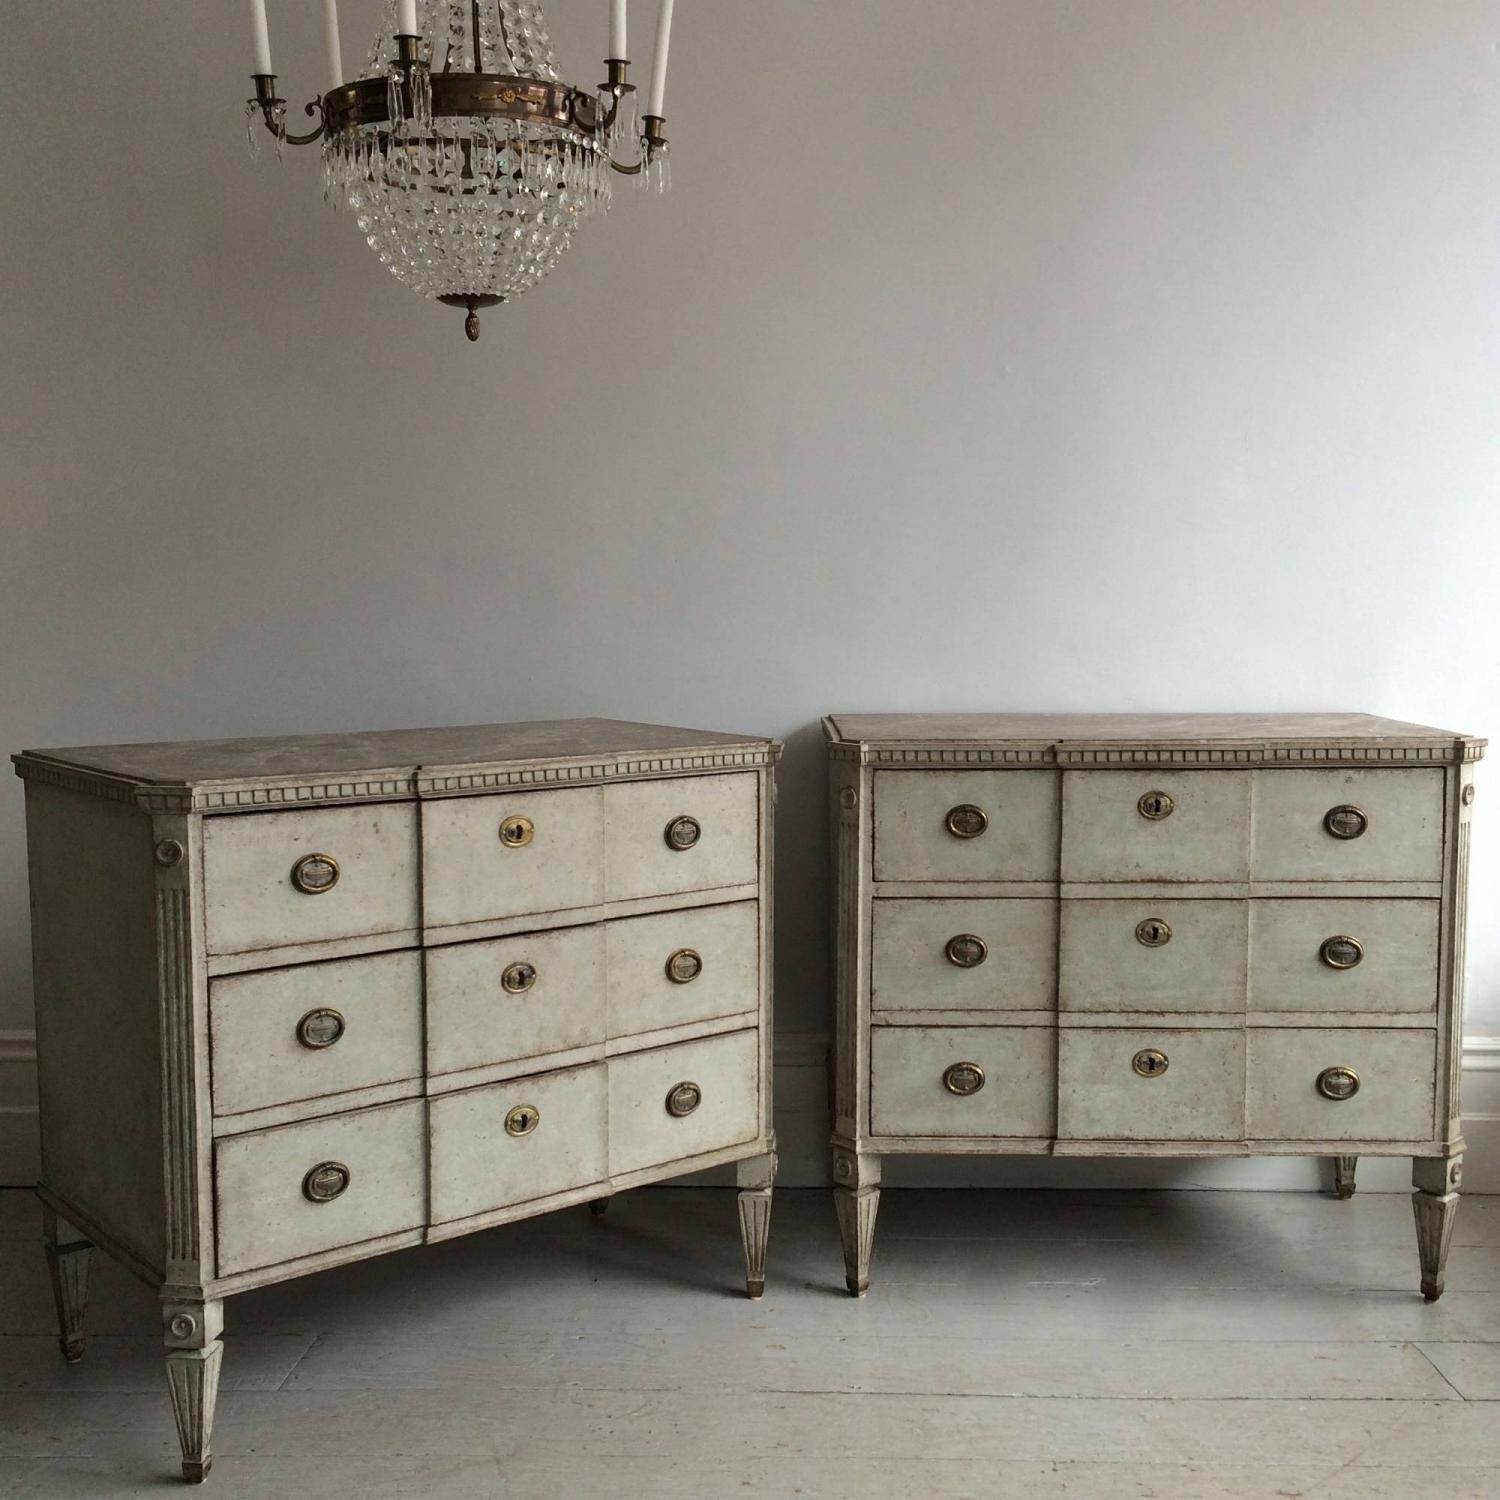 OUTSTANDING PAIR OF SWEDISH GUSTAVIAN STYLE CHESTS